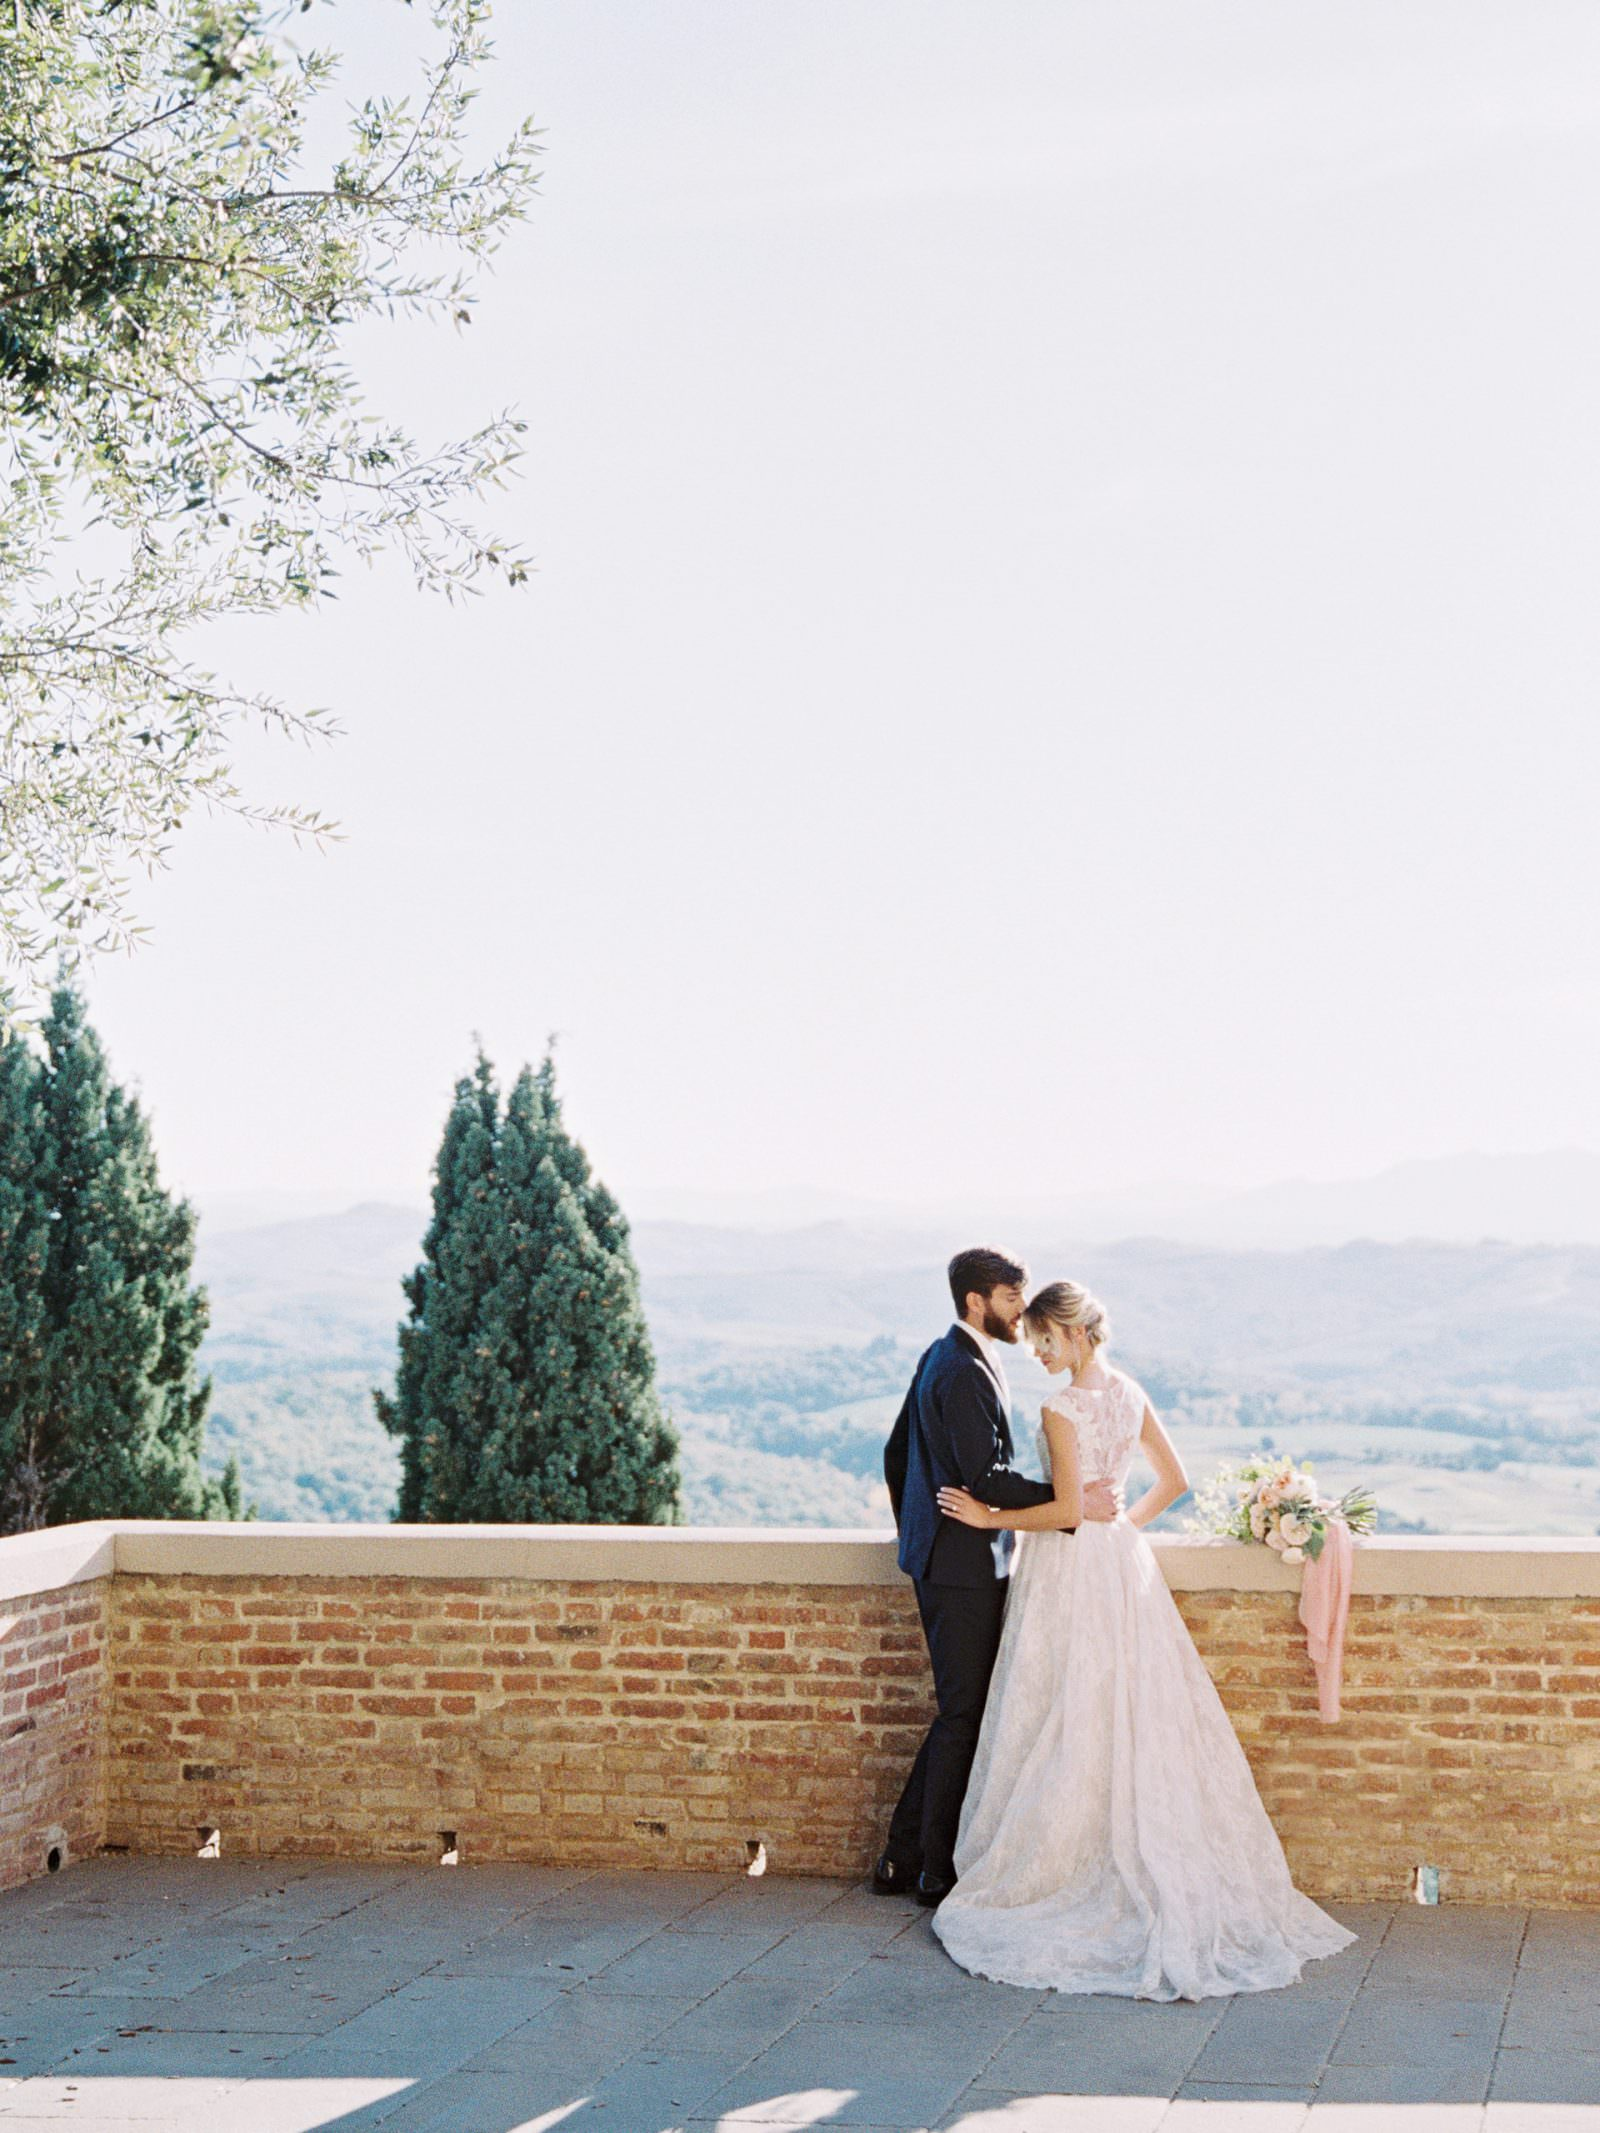 Wedding in Tuscany landscape and couples portraits